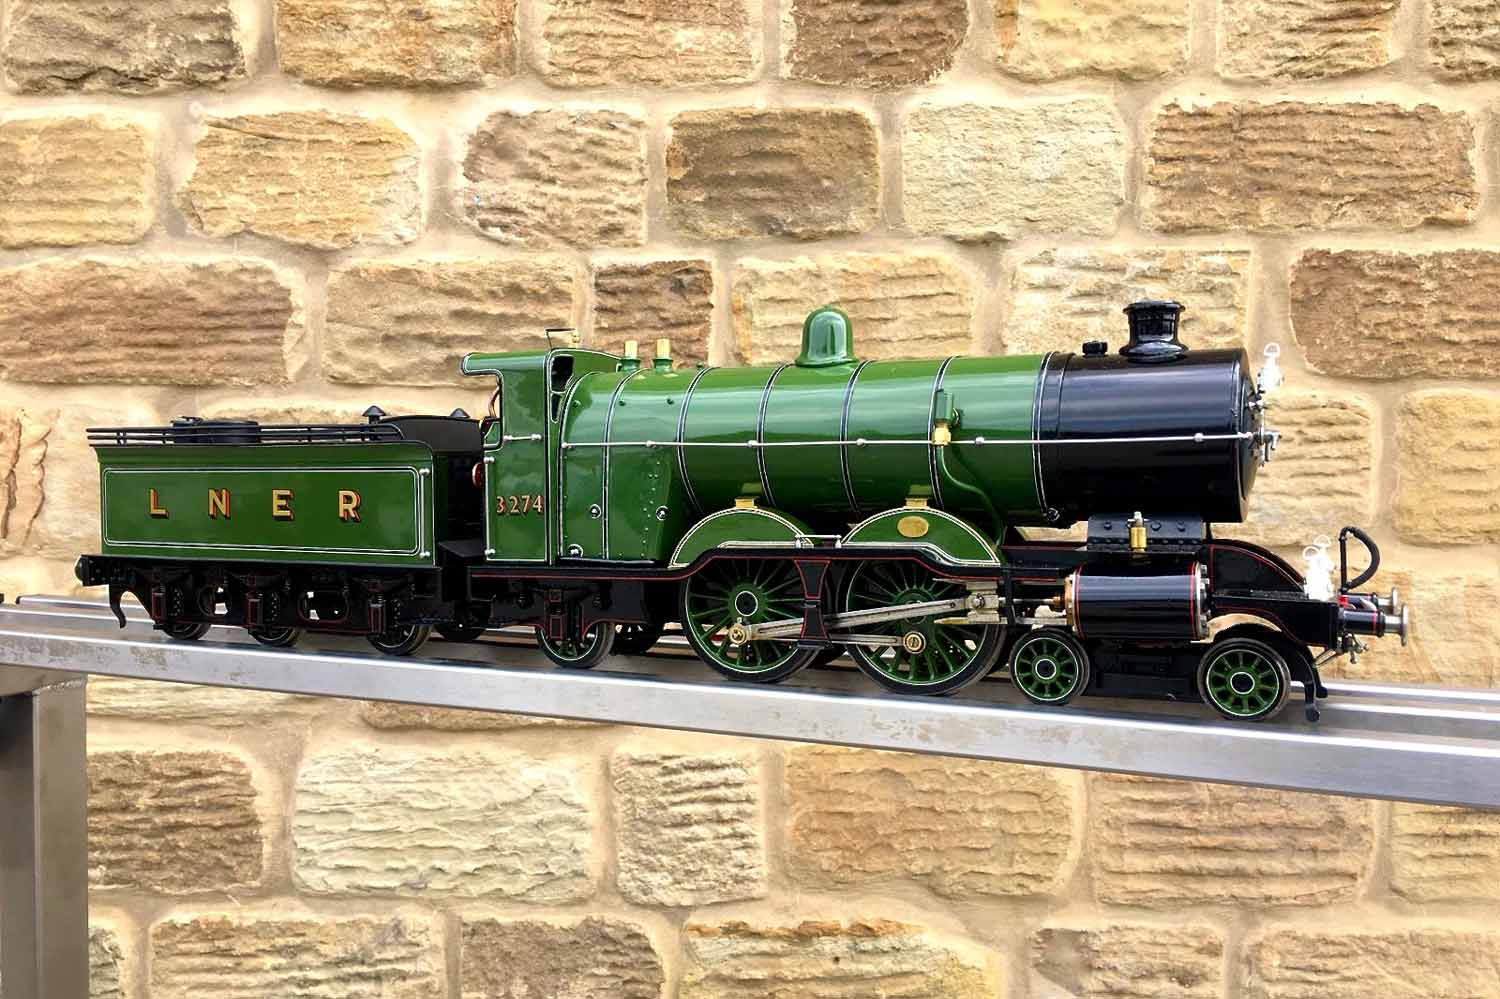 test 2-and-a-half-inch-gauge-3-GNR-C1-Atlantic-Ayesha-live-steam-locomotive-for-sale-15